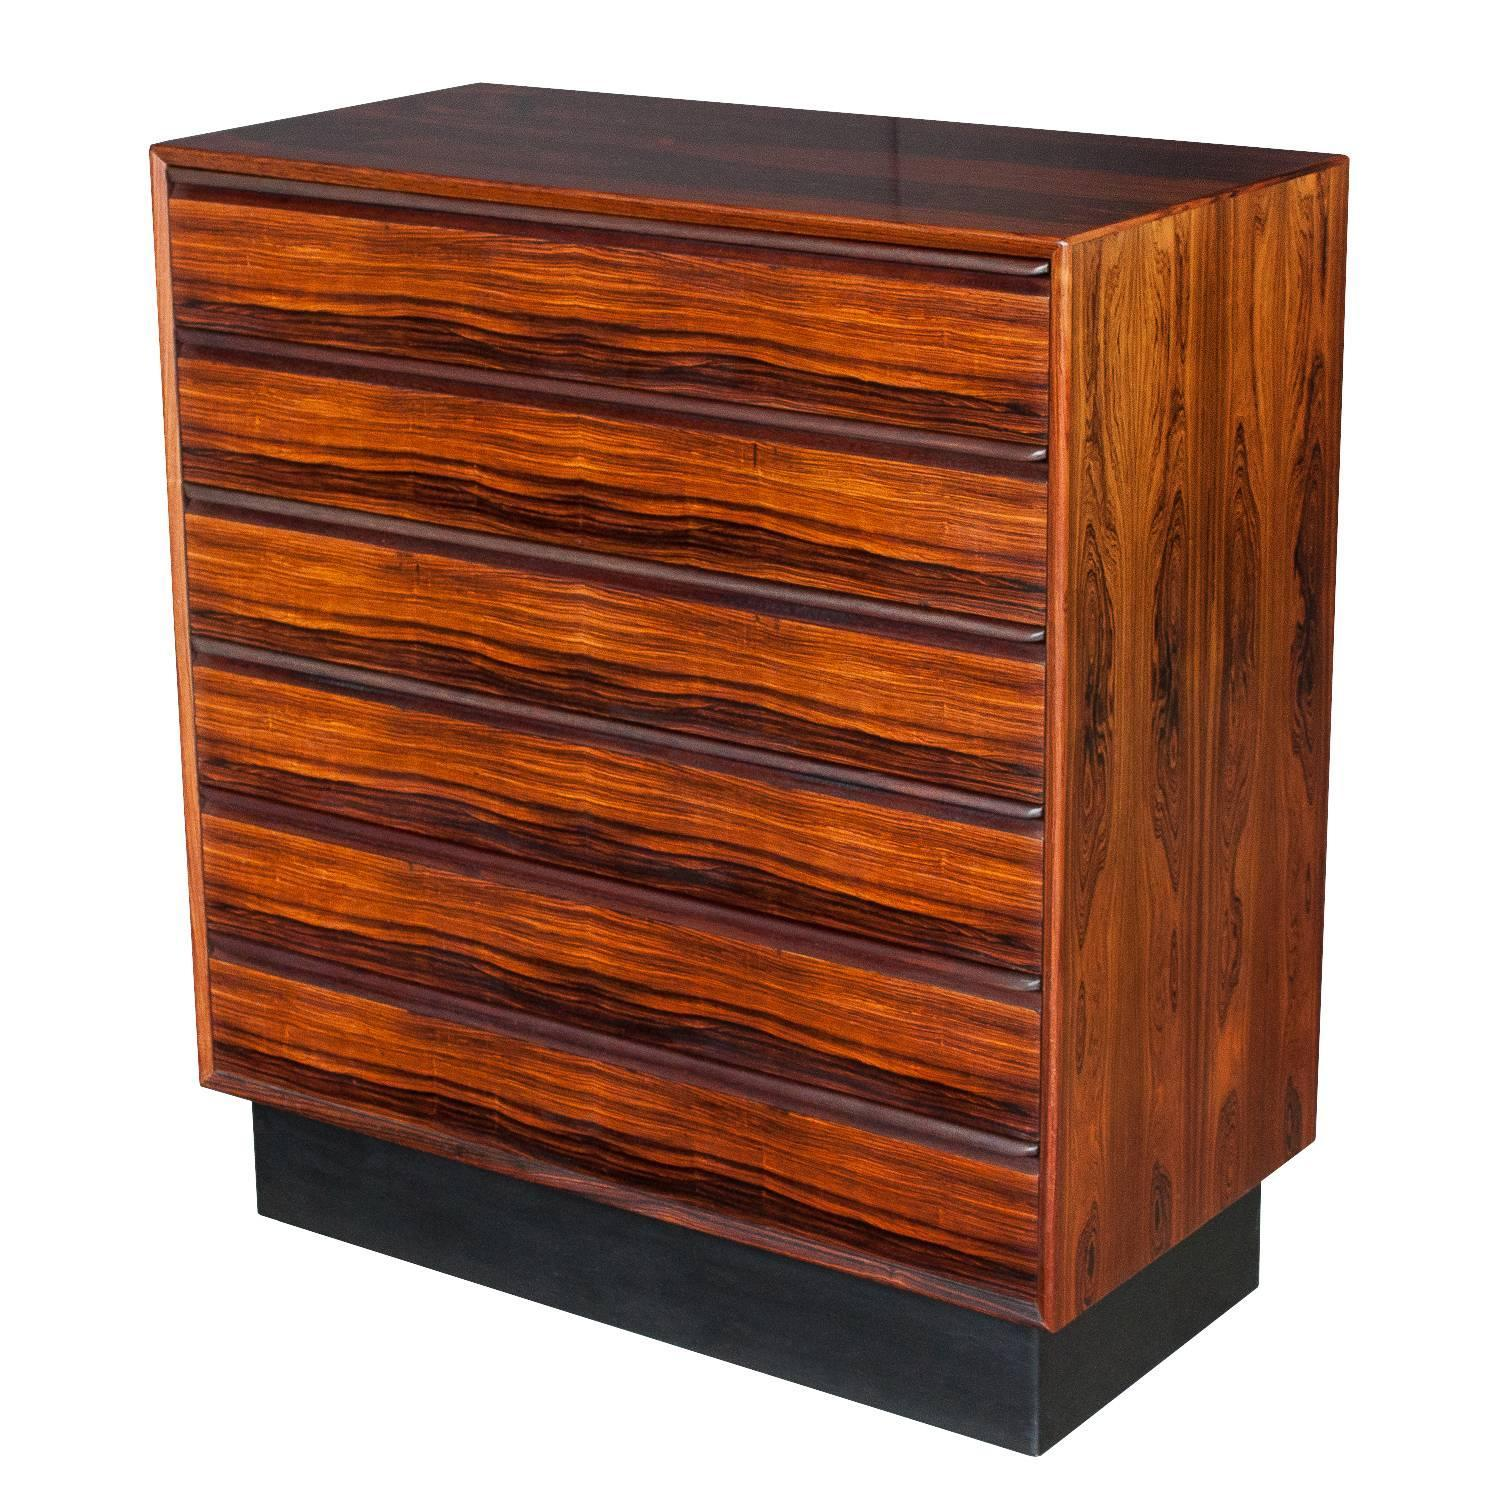 #B64B10 5856 N Broadway Chicago IL 60660 United States (312) 883 9925 with 1500x1500 px of Most Effective 6 Drawer Tall Dresser 15001500 wallpaper @ avoidforclosure.info